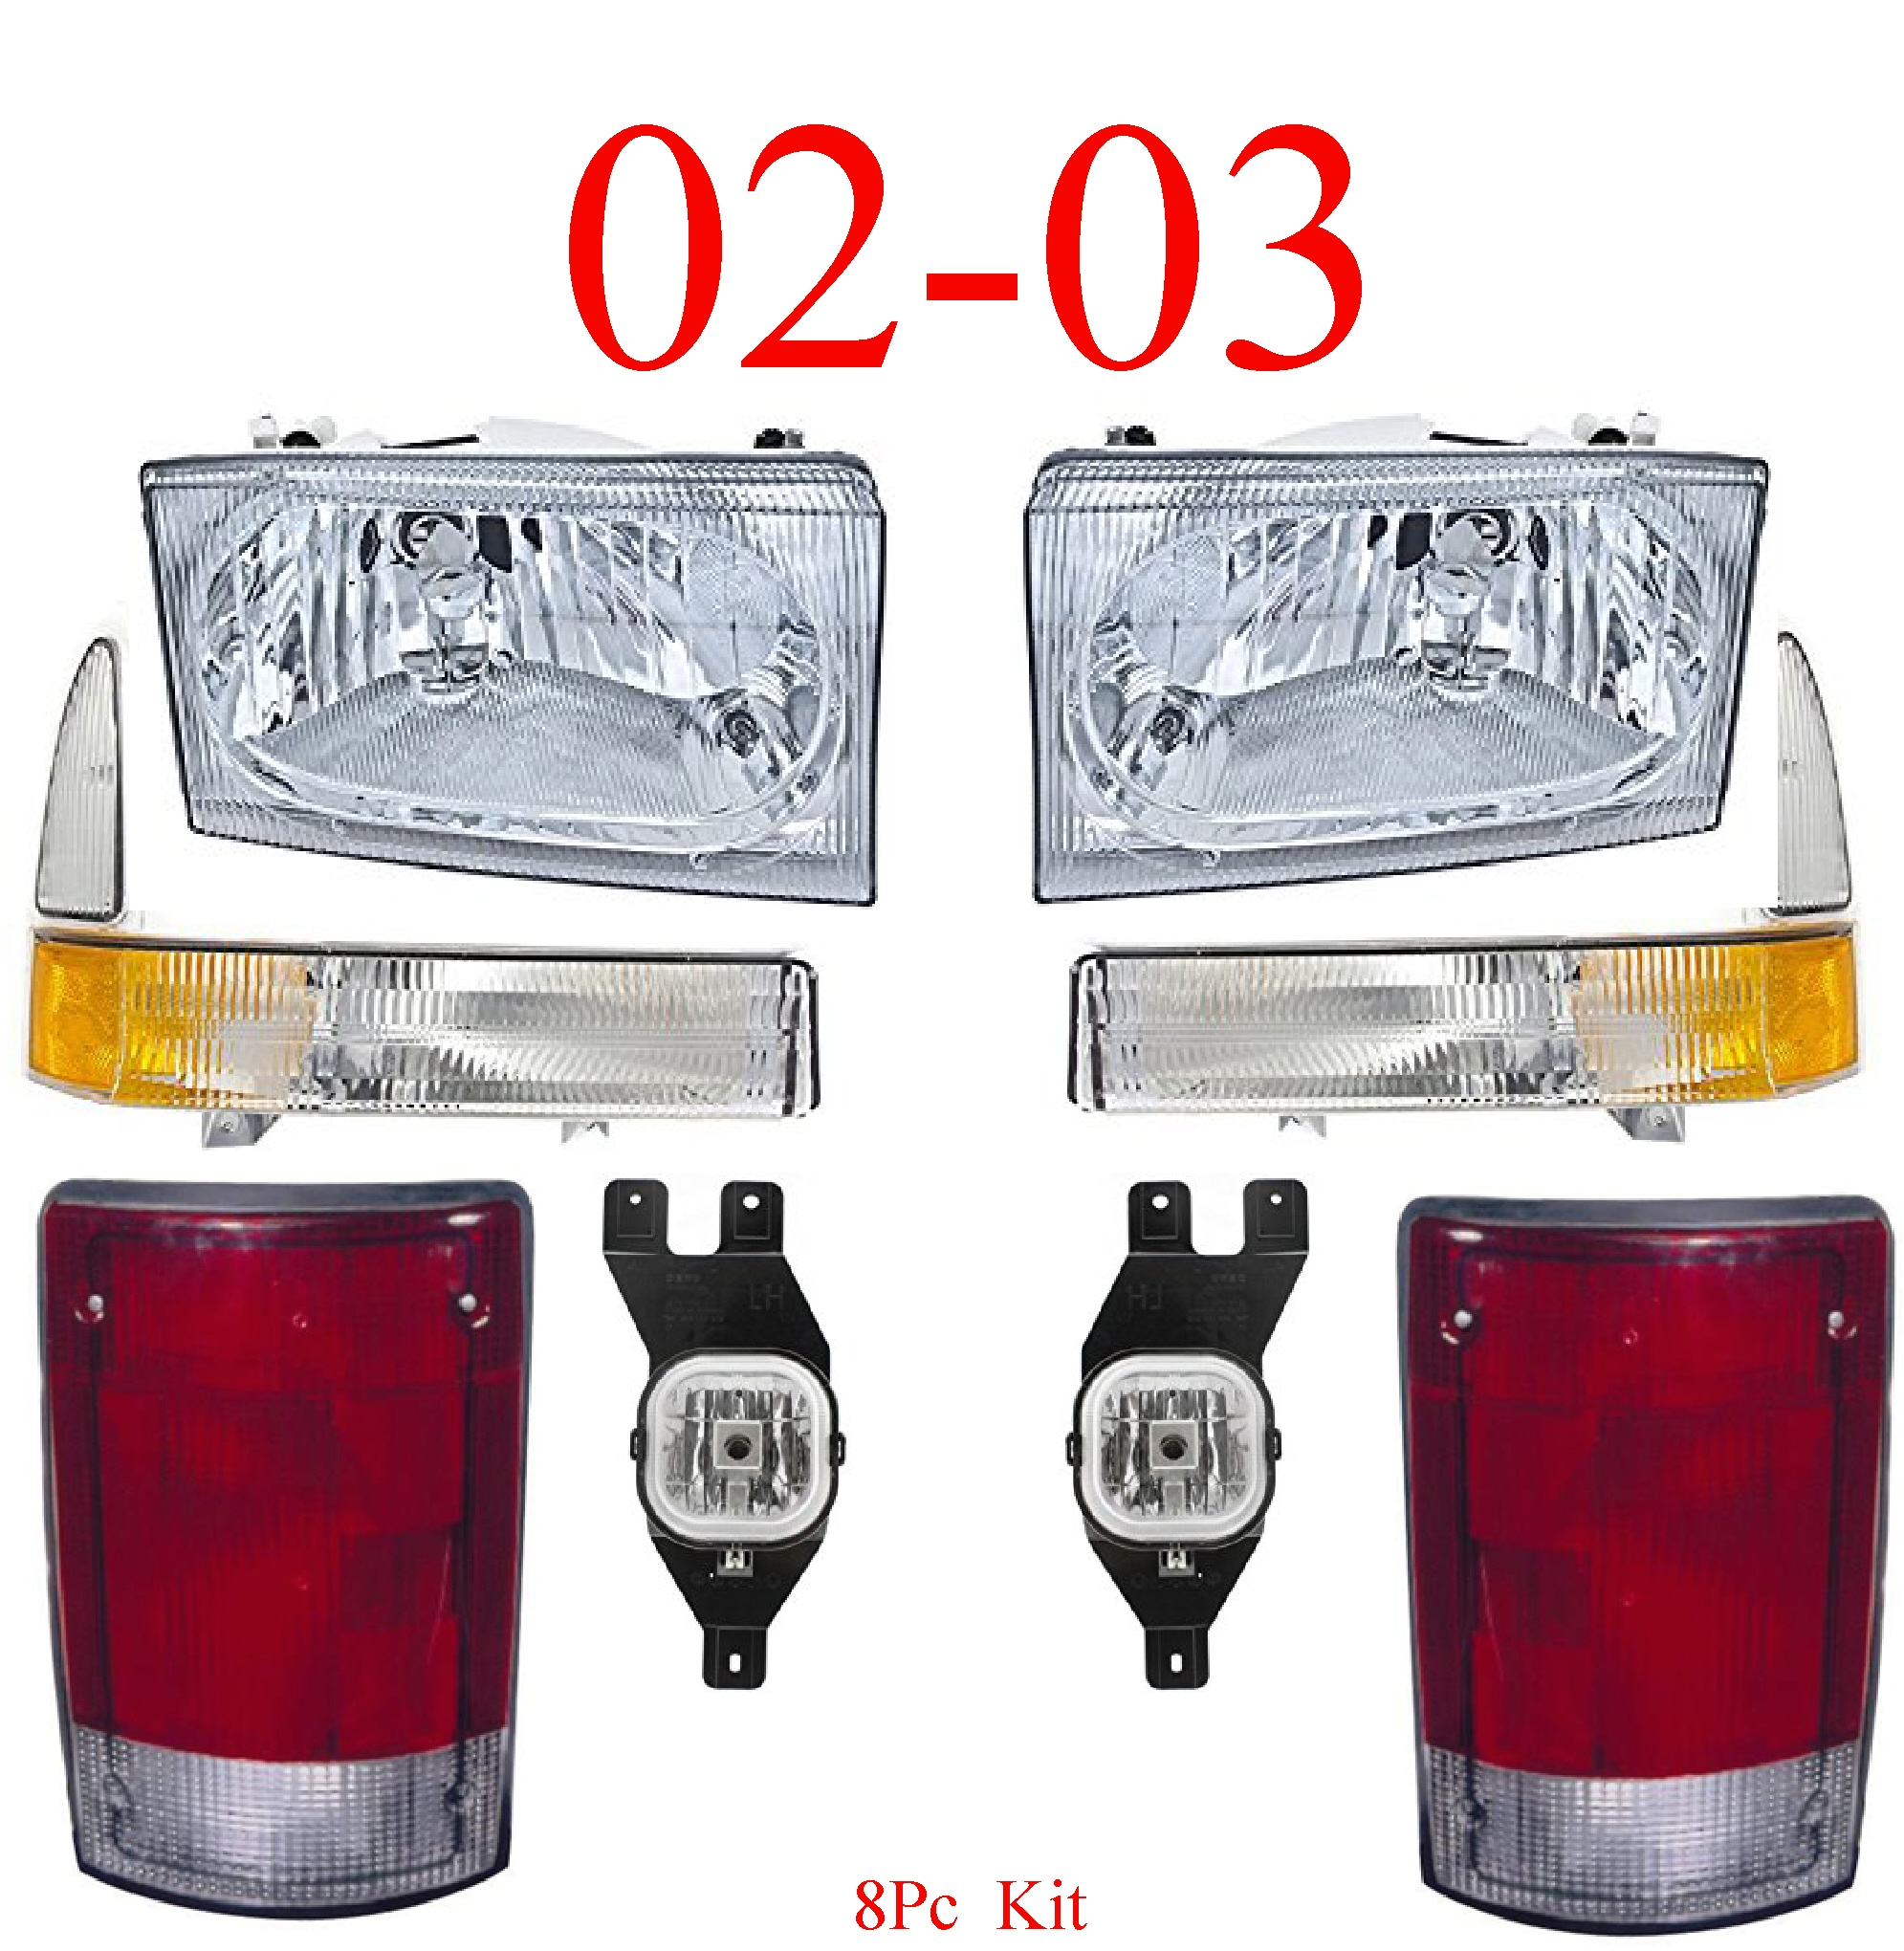 02-03 Ford Excursion 8Pc Head, Park, Fog & Tail Light Kit